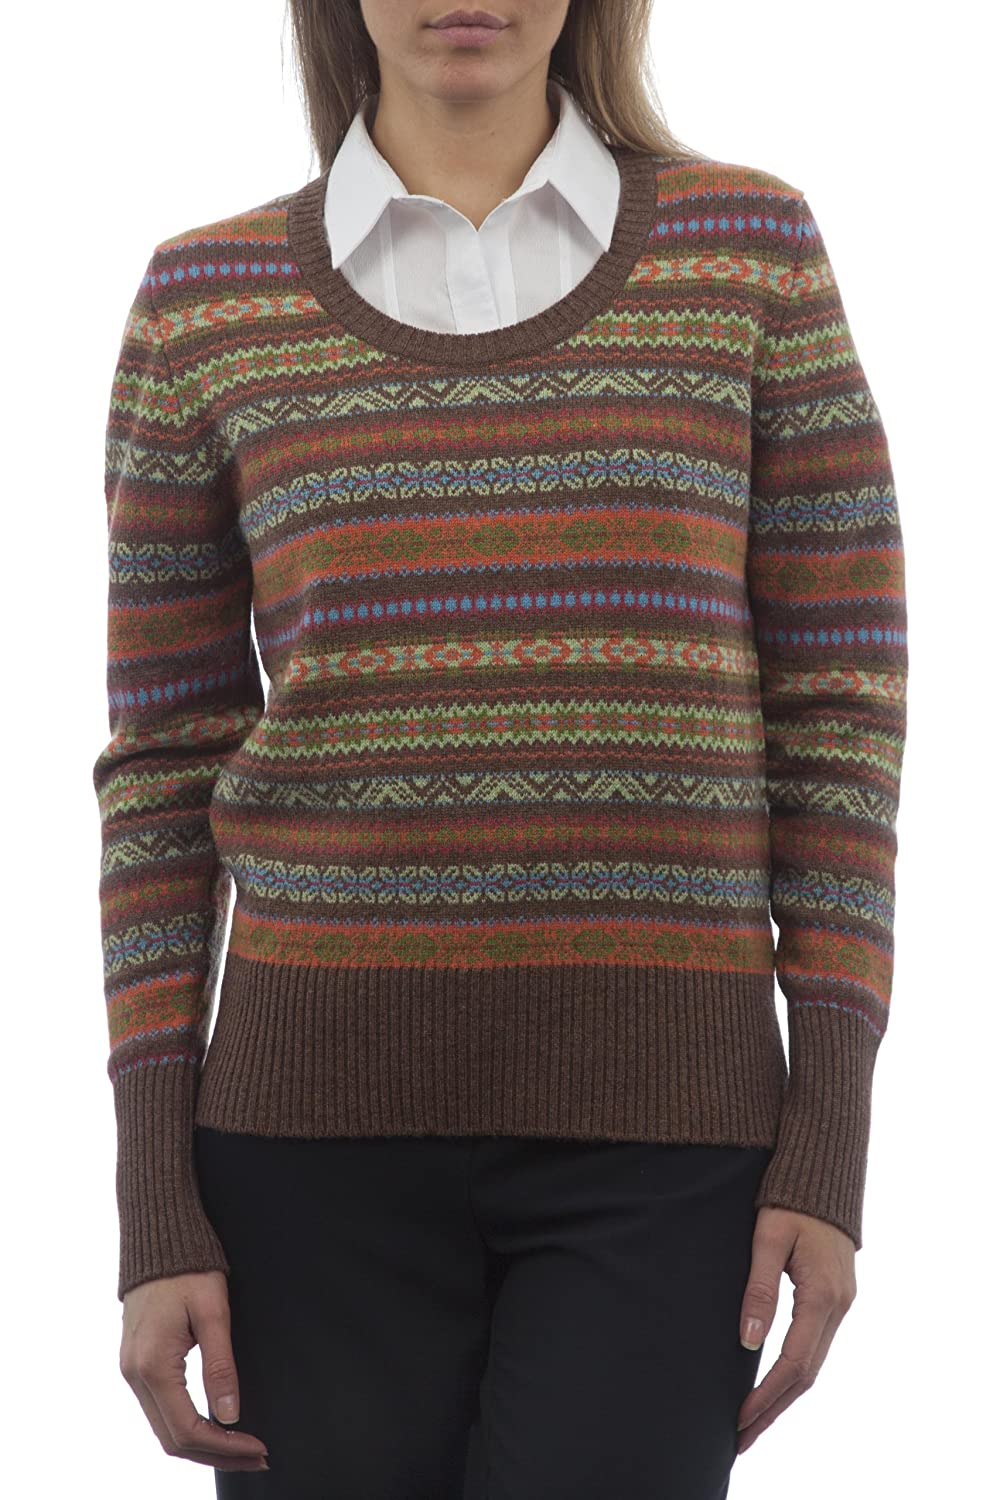 Hawick Knitwear Ladies' 100% Lambswool Scoop Neck Fairisle Sweater ...